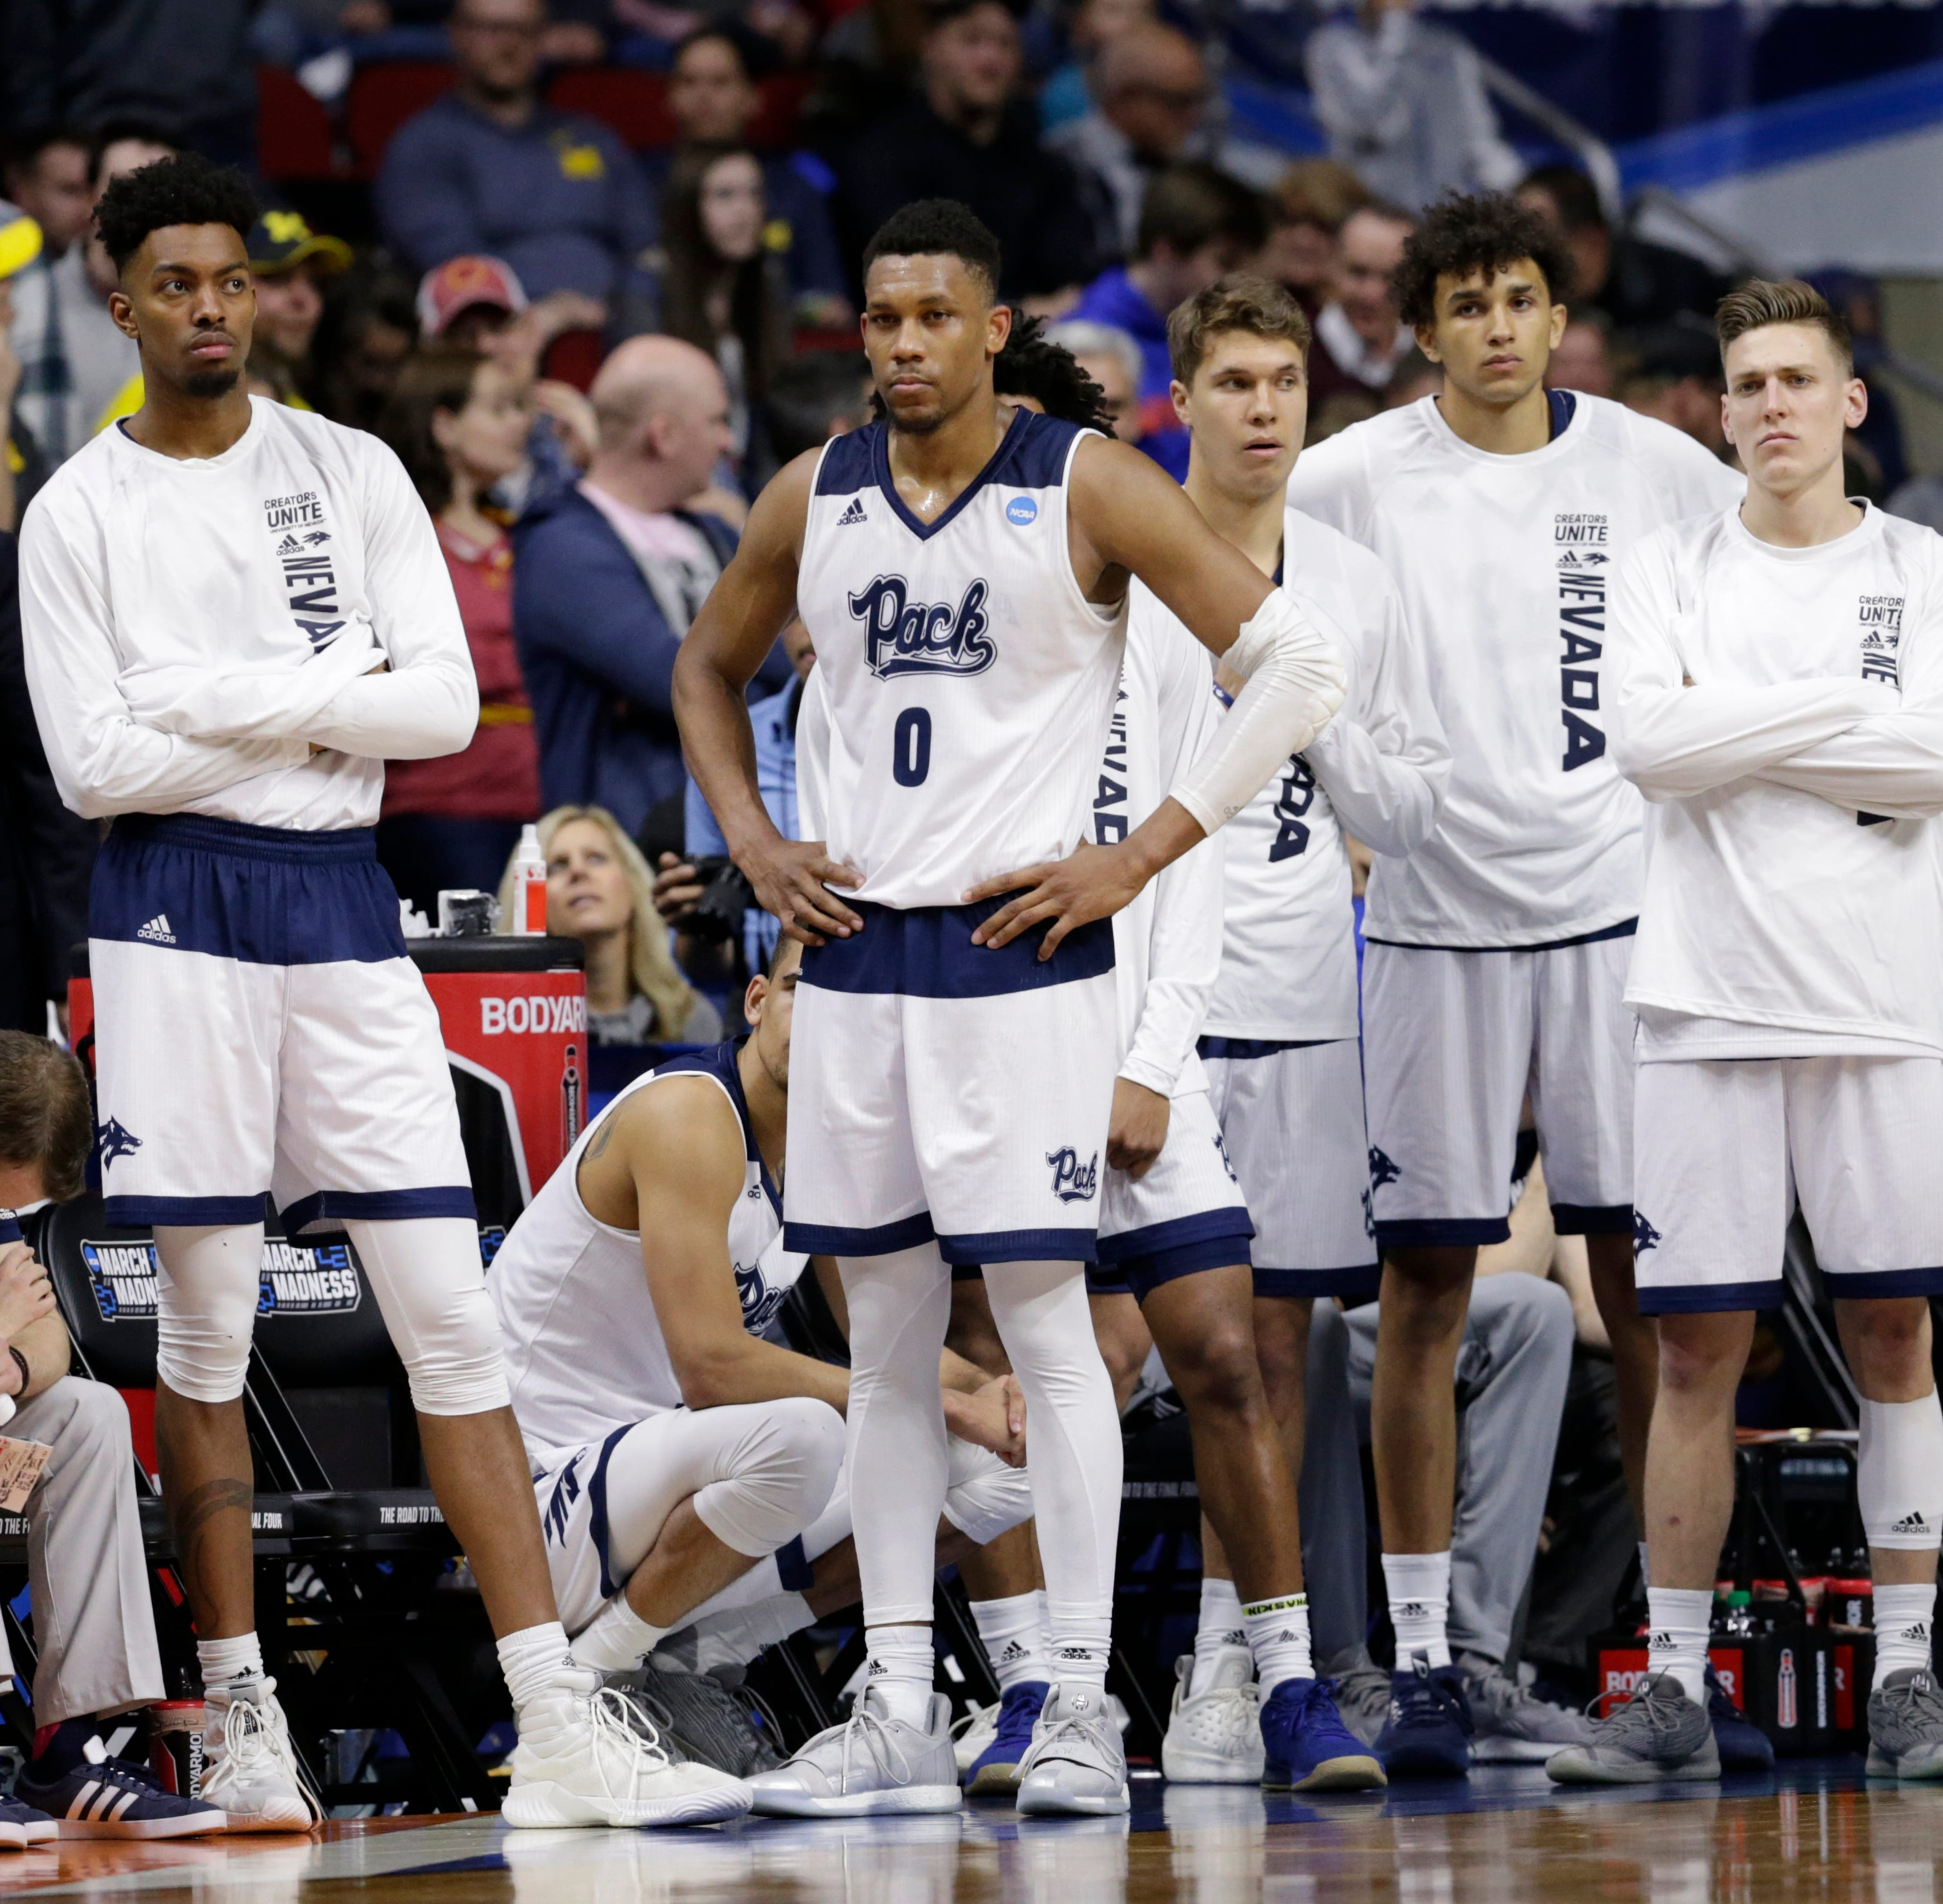 NCAA Tournament: Nevada Wolf Pack's season ends with first-round 70-61 loss to Florida